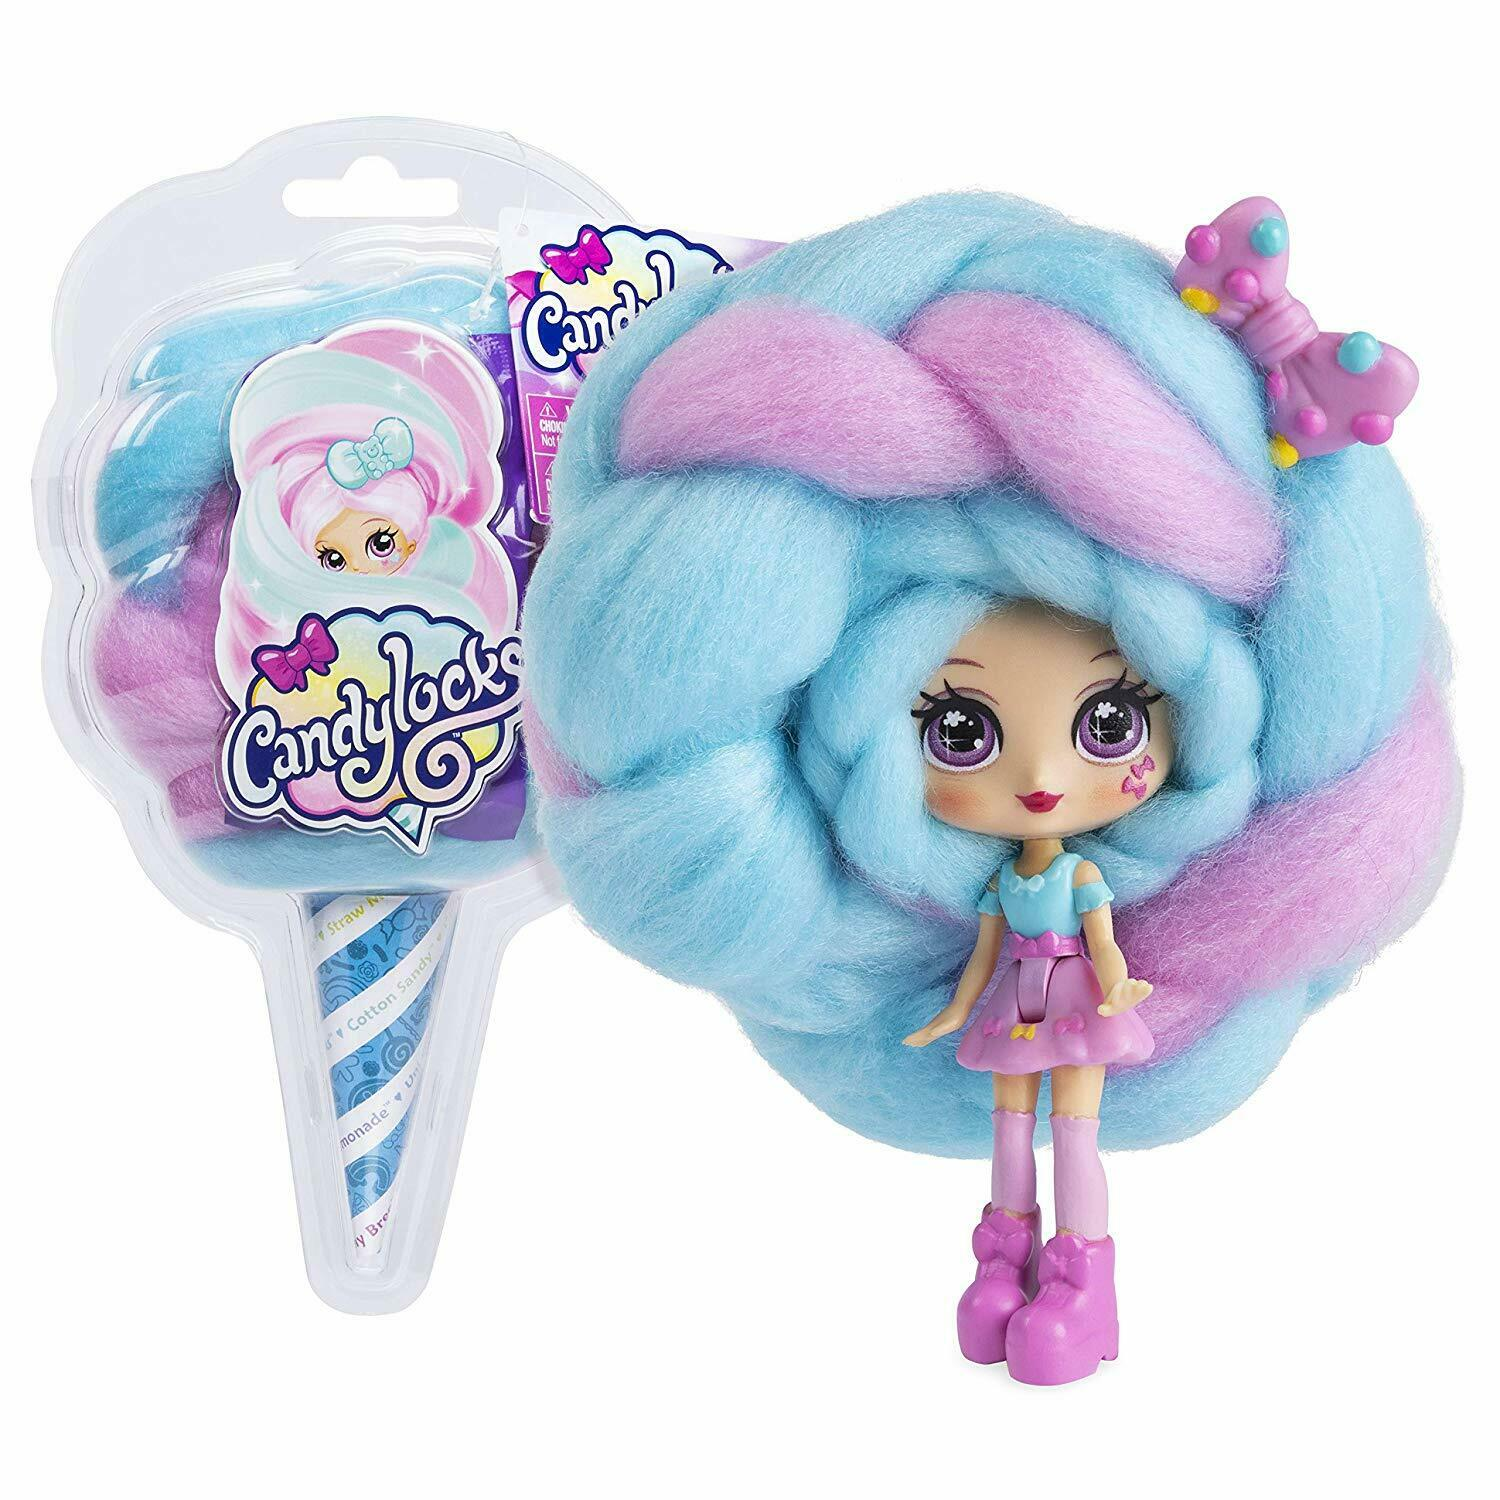 Candylockse Sweet Treat Toys Hobbies Dolls Accessories Marshmallow Hair 30cm Surprise Hairstyle With Scented Doll -1pcs Random